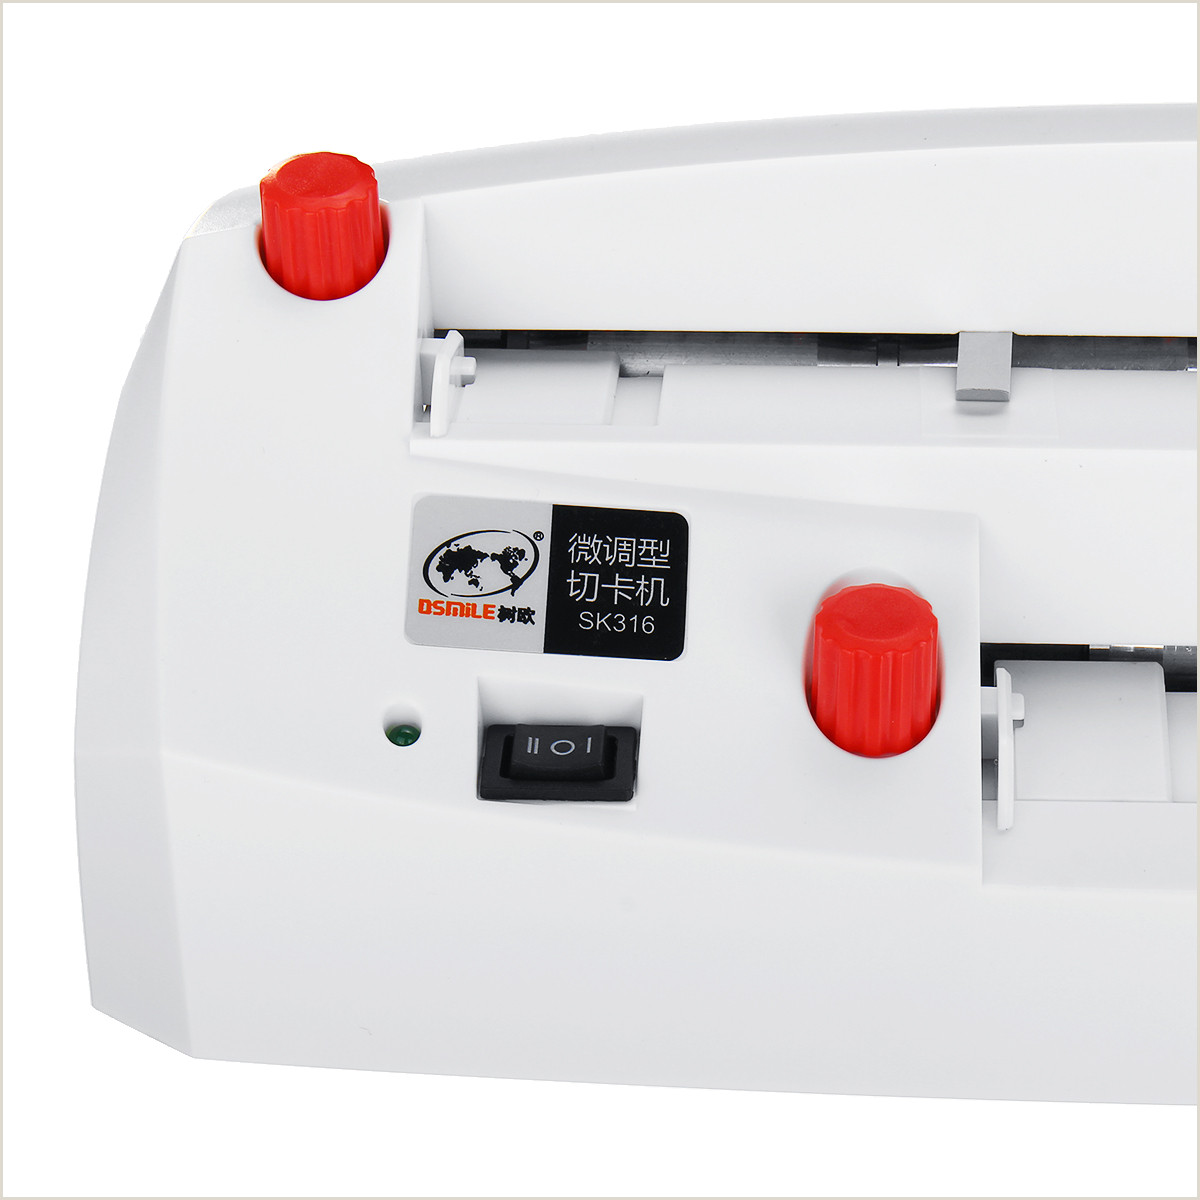 Business Name On Card Automatic Business Electric Card Cutter Name Card Slitter Cutter A4 Size For Home Fice